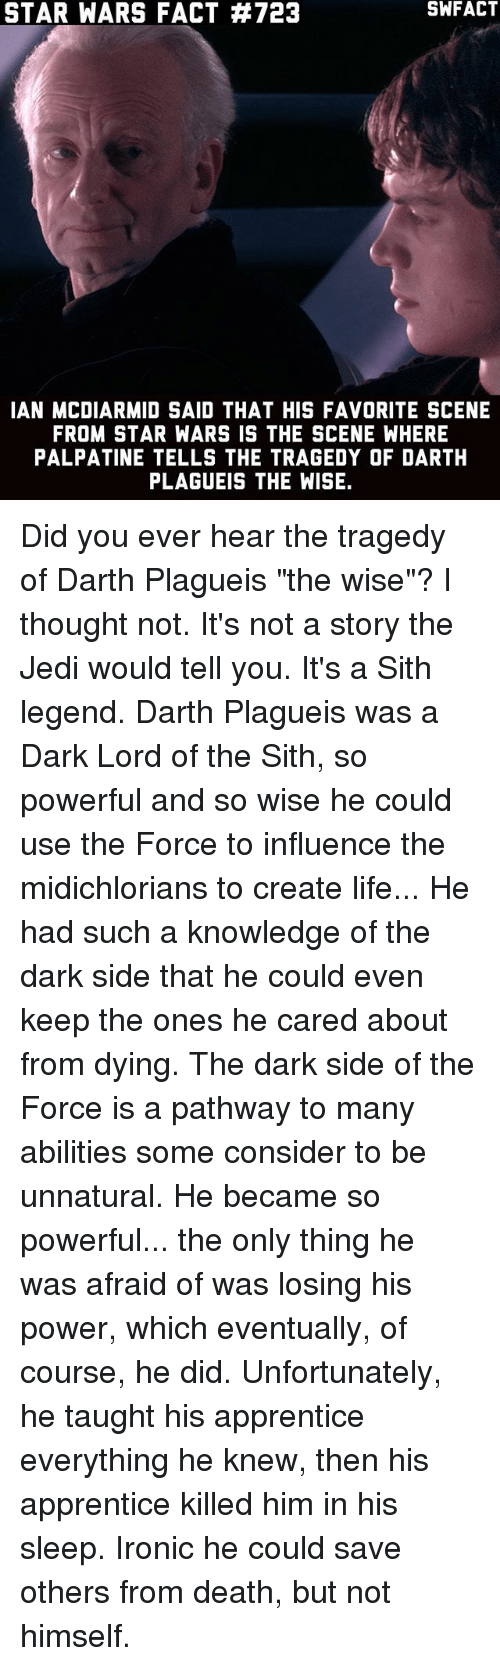 """Ironic, Jedi, and Life: STAR WARS FACT #723  IAN MCDIARMID SAID THAT HIS FAVORITE SCENE  FROM STAR WARS IS THE SCENE WHERE  PALPATINE TELLS THE TRAGEDY OF DARTH  PLAGUEIS THE WISE. Did you ever hear the tragedy of Darth Plagueis """"the wise""""? I thought not. It's not a story the Jedi would tell you. It's a Sith legend. Darth Plagueis was a Dark Lord of the Sith, so powerful and so wise he could use the Force to influence the midichlorians to create life... He had such a knowledge of the dark side that he could even keep the ones he cared about from dying. The dark side of the Force is a pathway to many abilities some consider to be unnatural. He became so powerful... the only thing he was afraid of was losing his power, which eventually, of course, he did. Unfortunately, he taught his apprentice everything he knew, then his apprentice killed him in his sleep. Ironic he could save others from death, but not himself."""